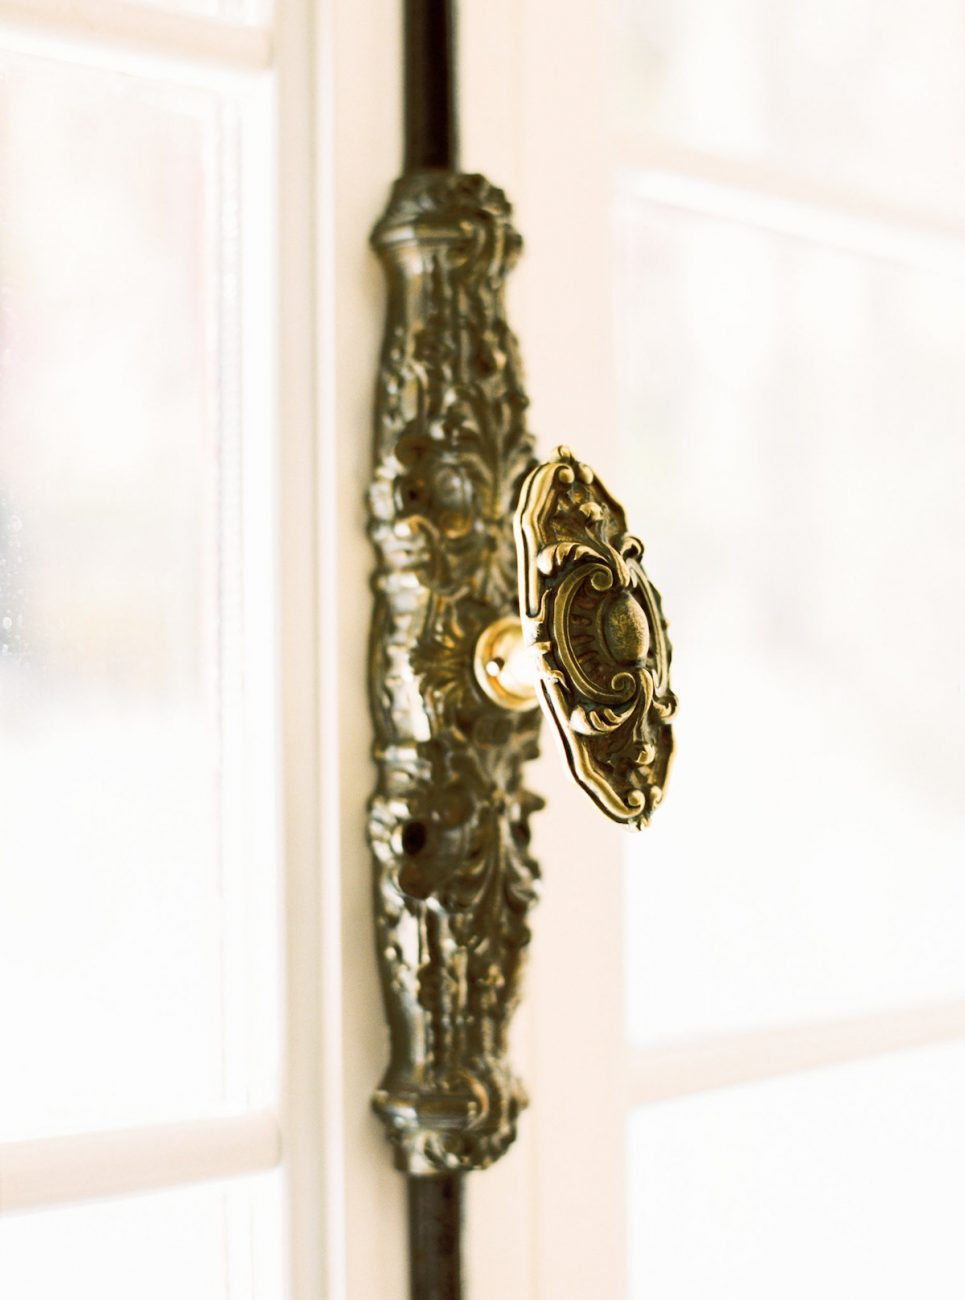 Palace Wedding Inspiration - antique door knob